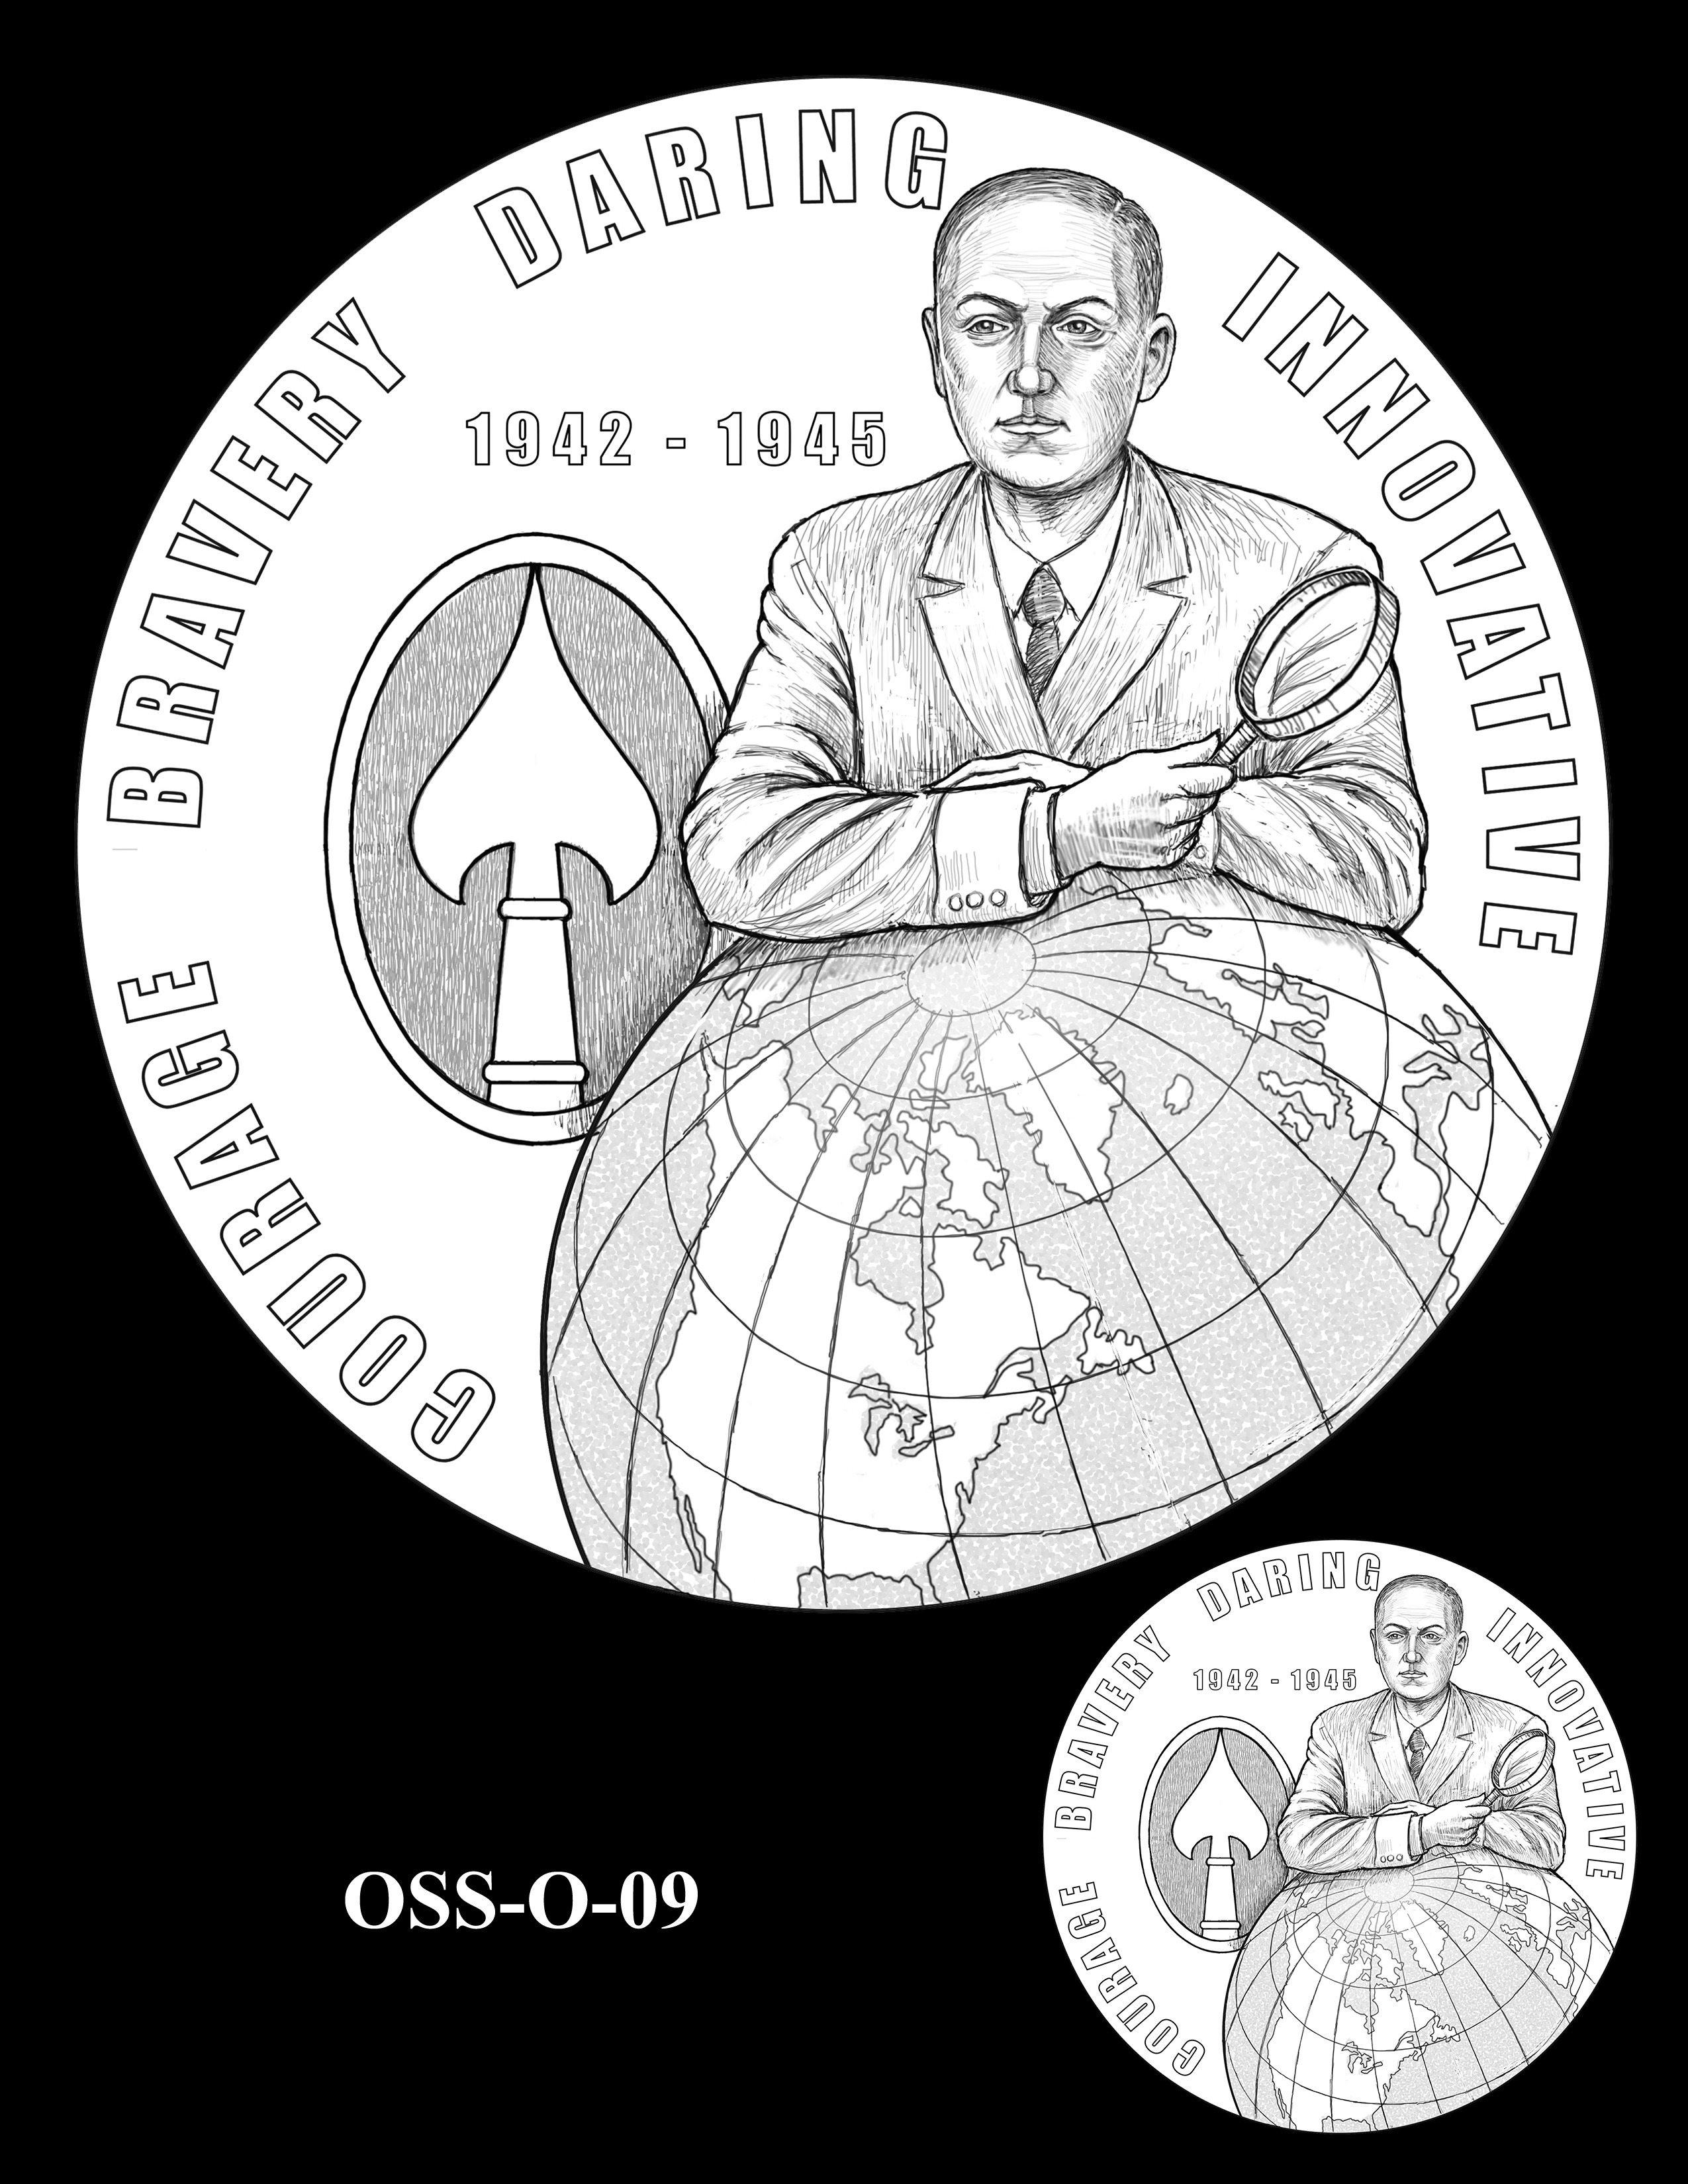 OSS-O-09 -- Office of Strategic Services Congressional Gold Medal